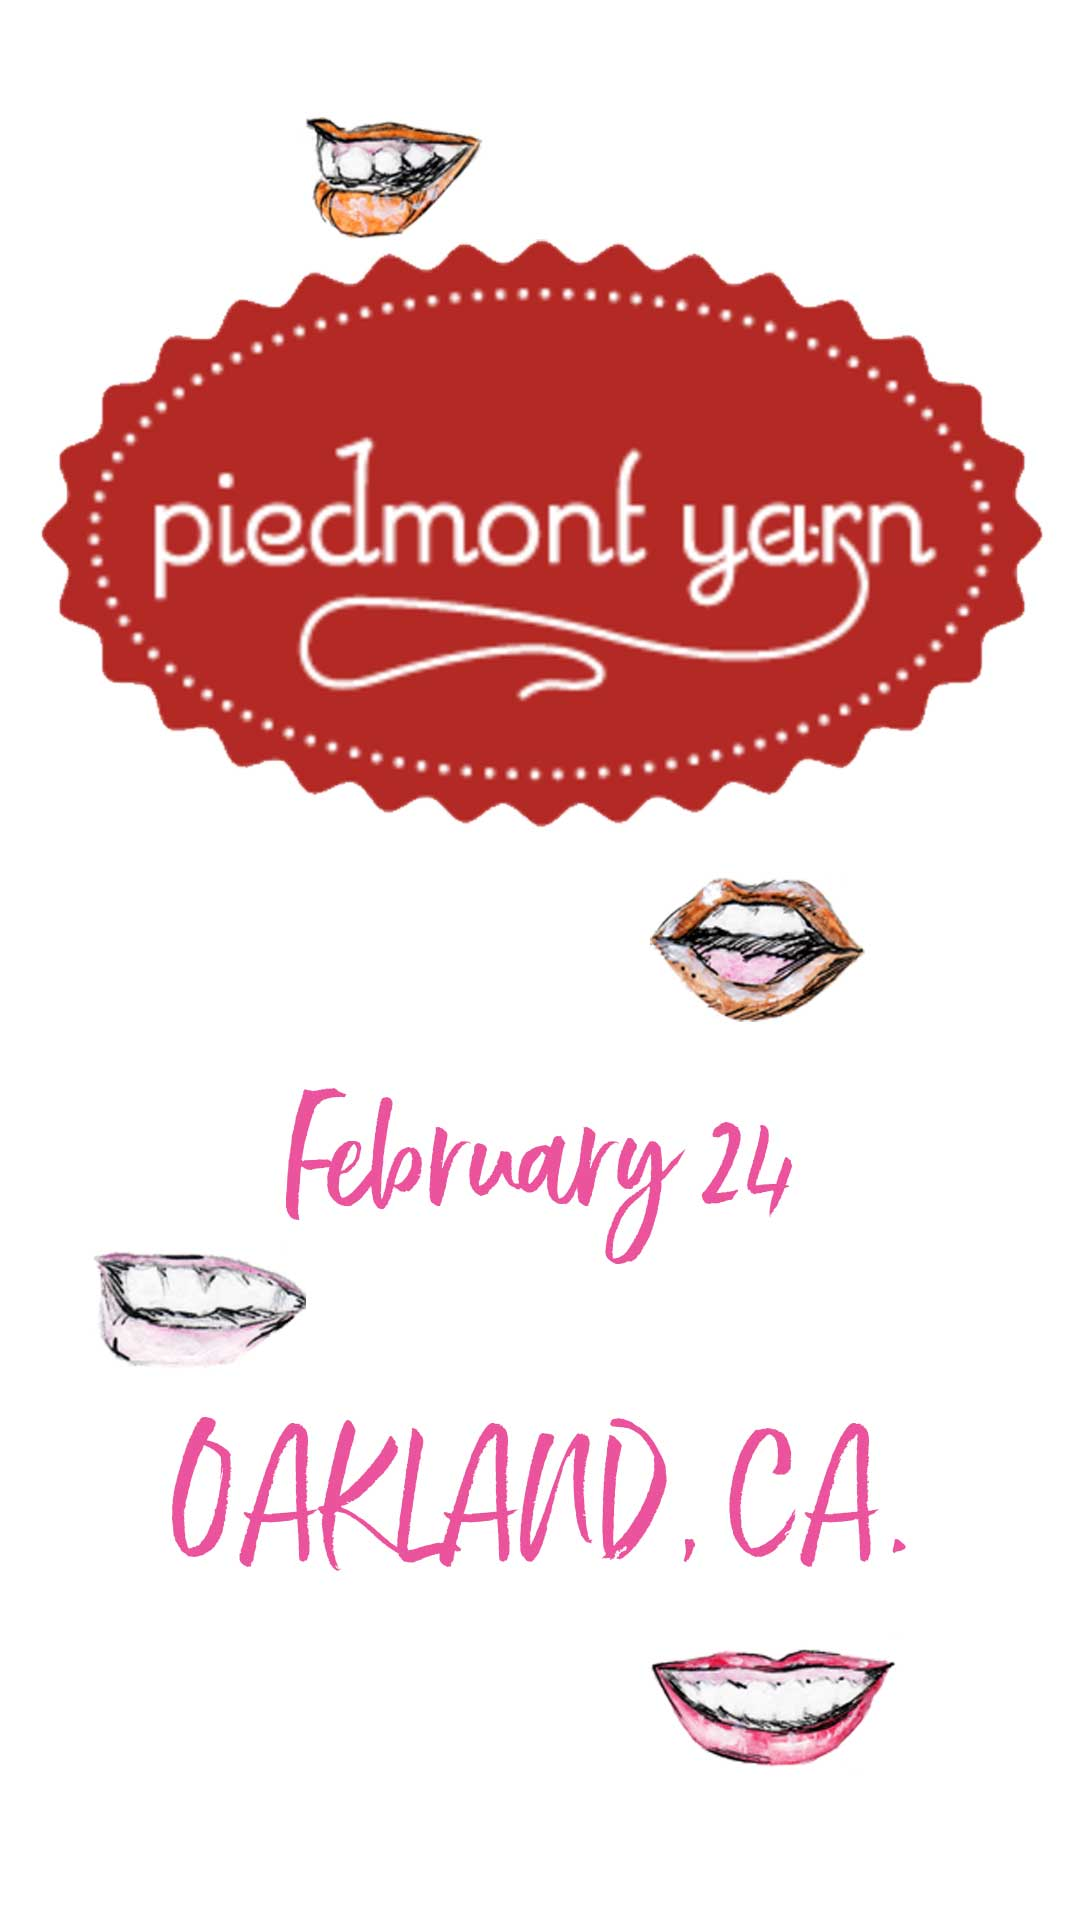 Piedmont Yarn & Apparel Oakland